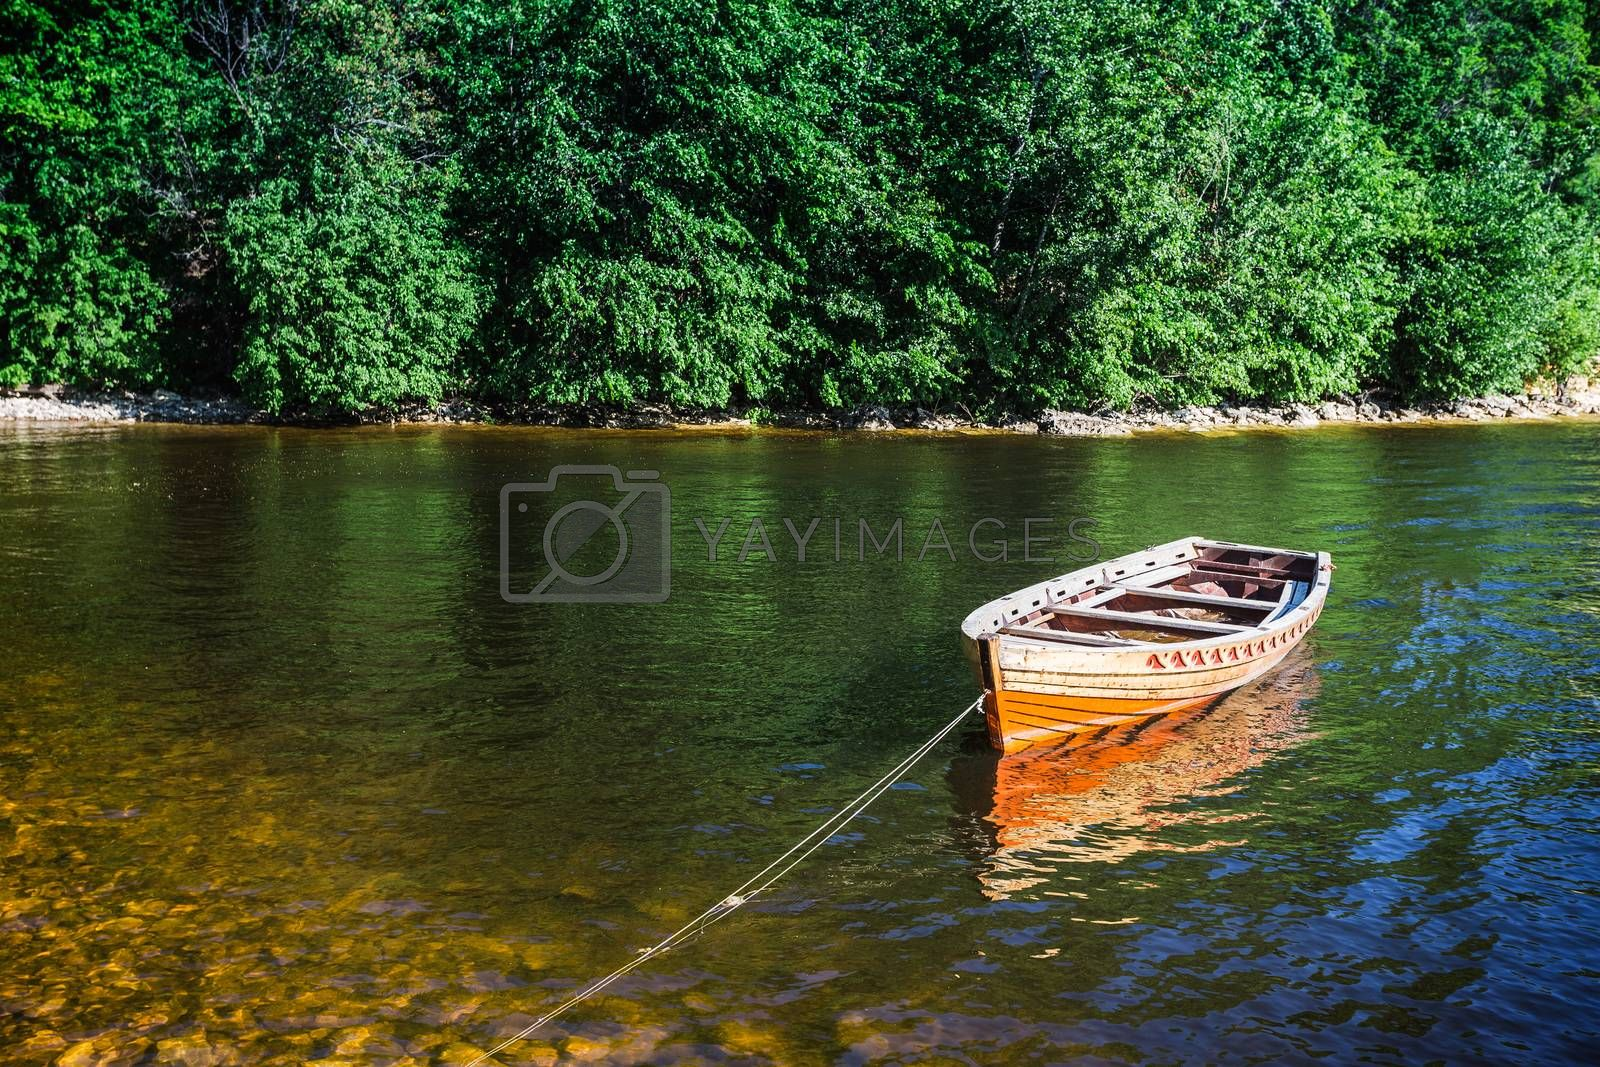 wooden boat on the river bank on forest background and blue sky reflecting in the surface of the river.